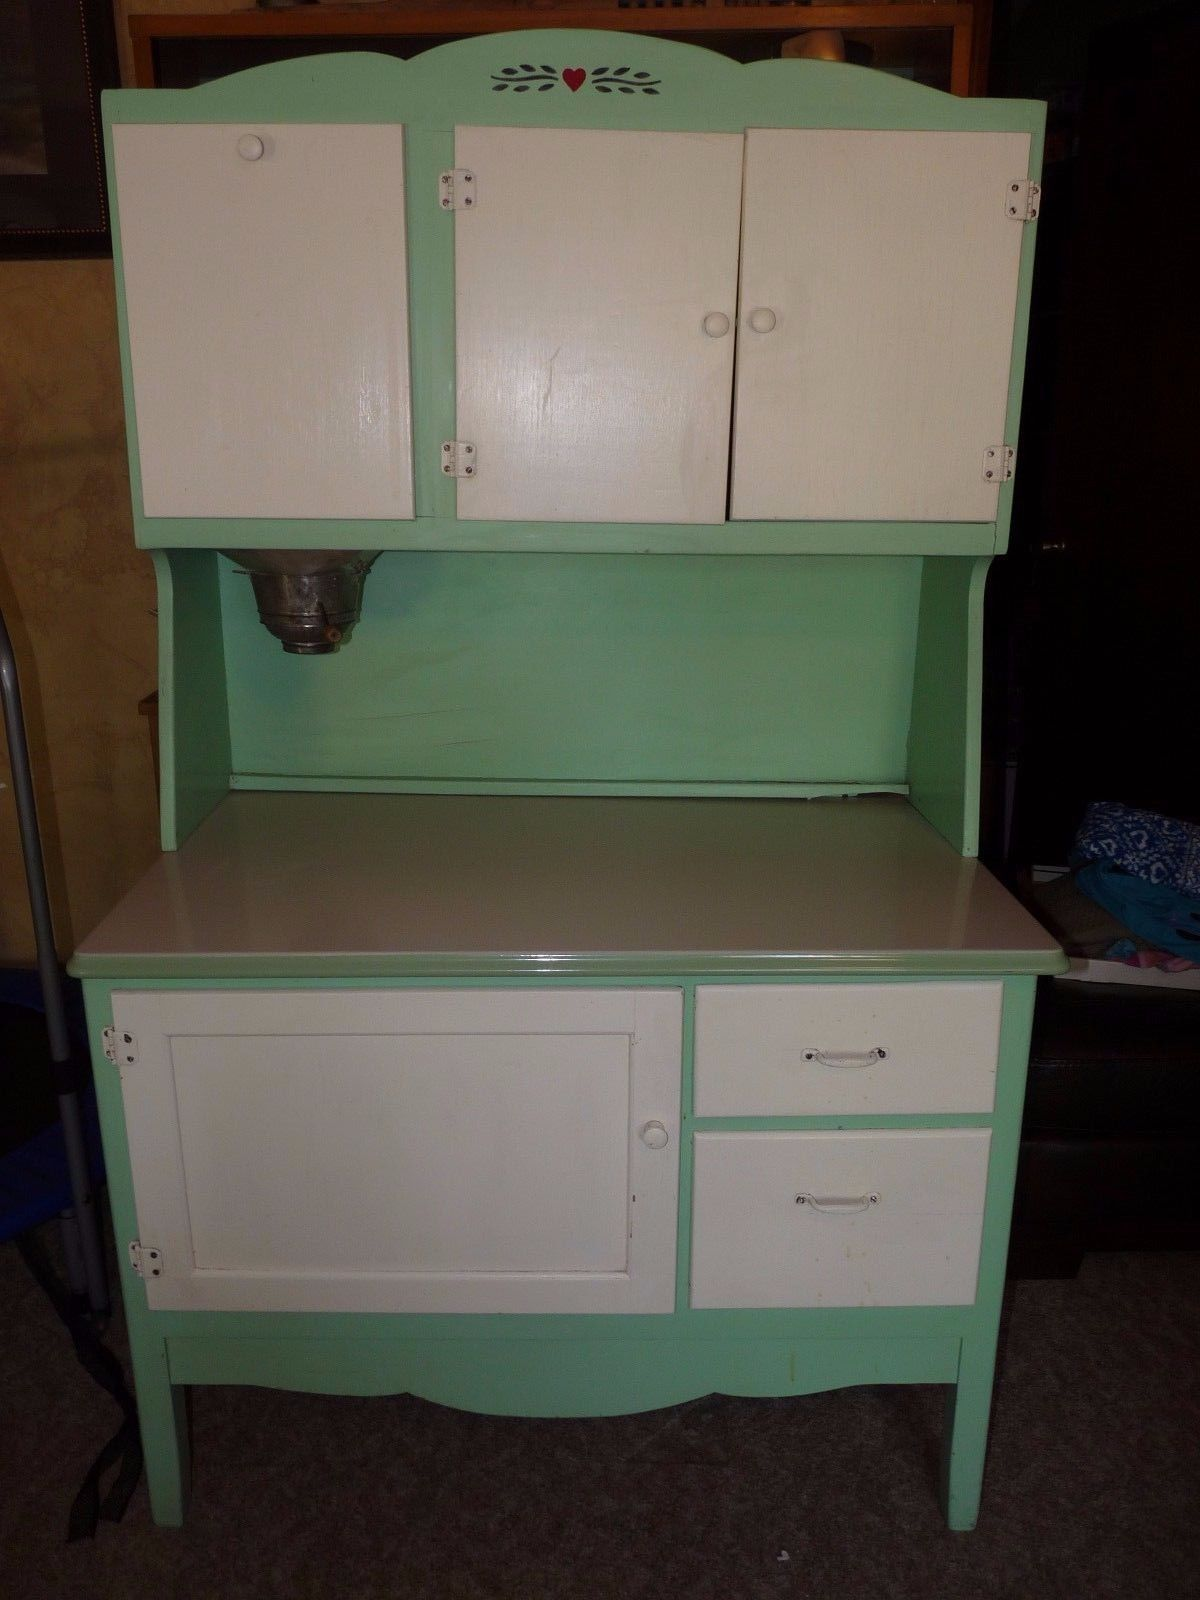 Antique Hoosier Cabinet Kitchen Flour Bin Enamel Green Benjamin Crysteel Updated 1900 1950 Cabinets Cu Antique Cabinets Hoosier Cabinet Cabinet Furniture